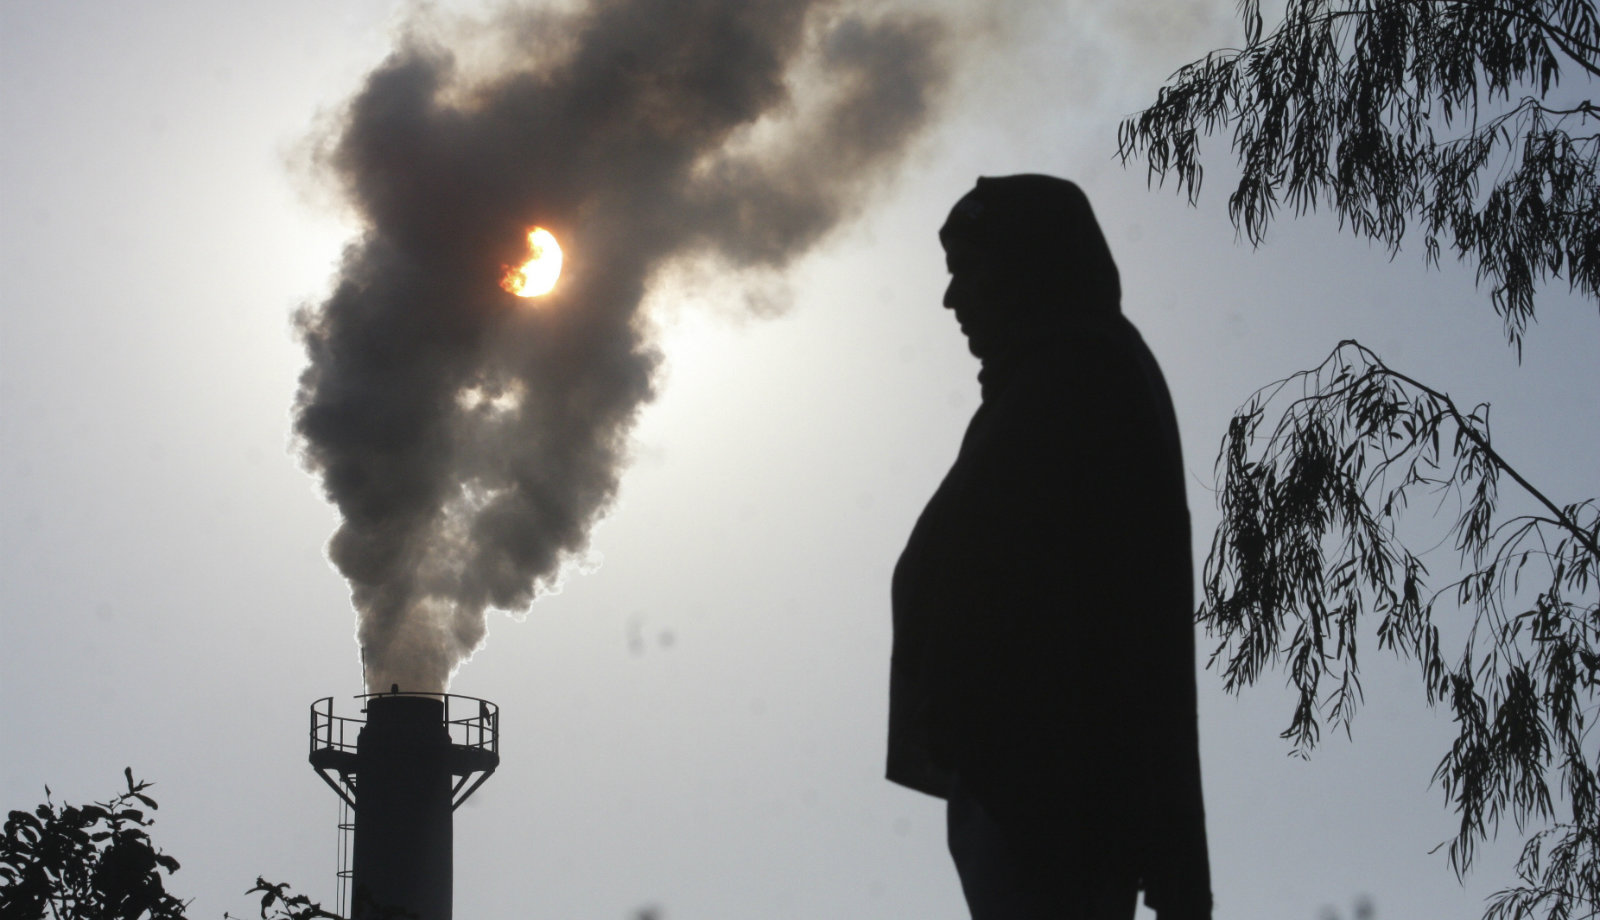 A smoke rises from a chimney of a garbage processing plant on the outskirts of the northern Indian city of Chandigarh December 8, 2010. Many rich countries, suffering weak growth and budget cuts, want emerging economies led by fast-growing China and India to do far more to reflect their growing power, including greater oversight of their curbs on greenhouse gas emissions.